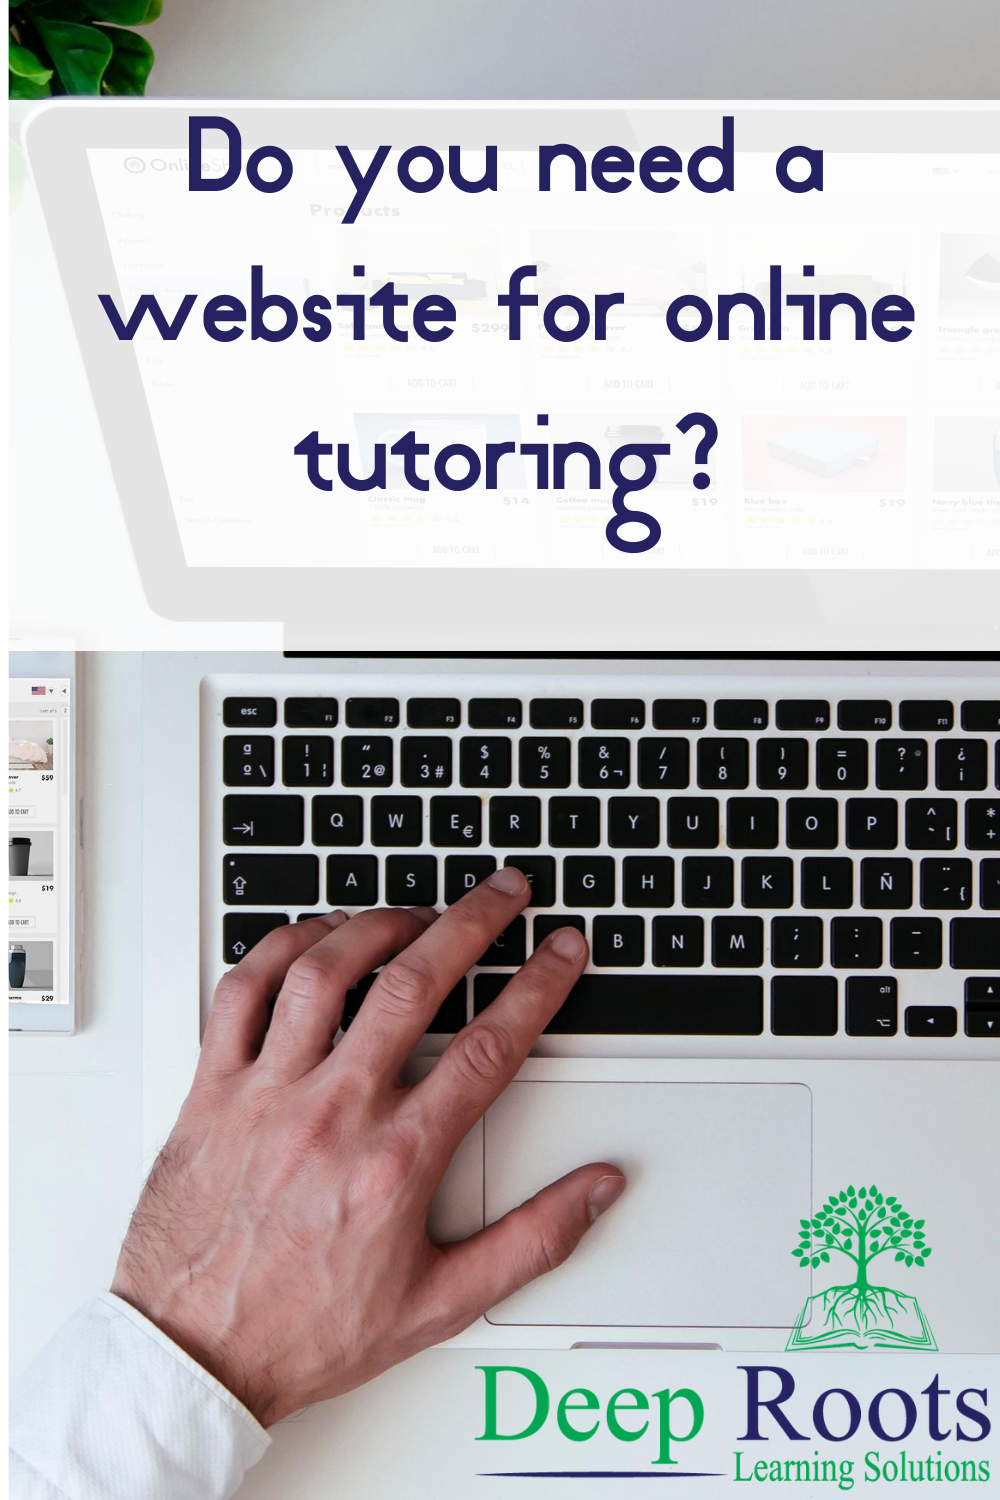 Do you need a website for online tutoring?